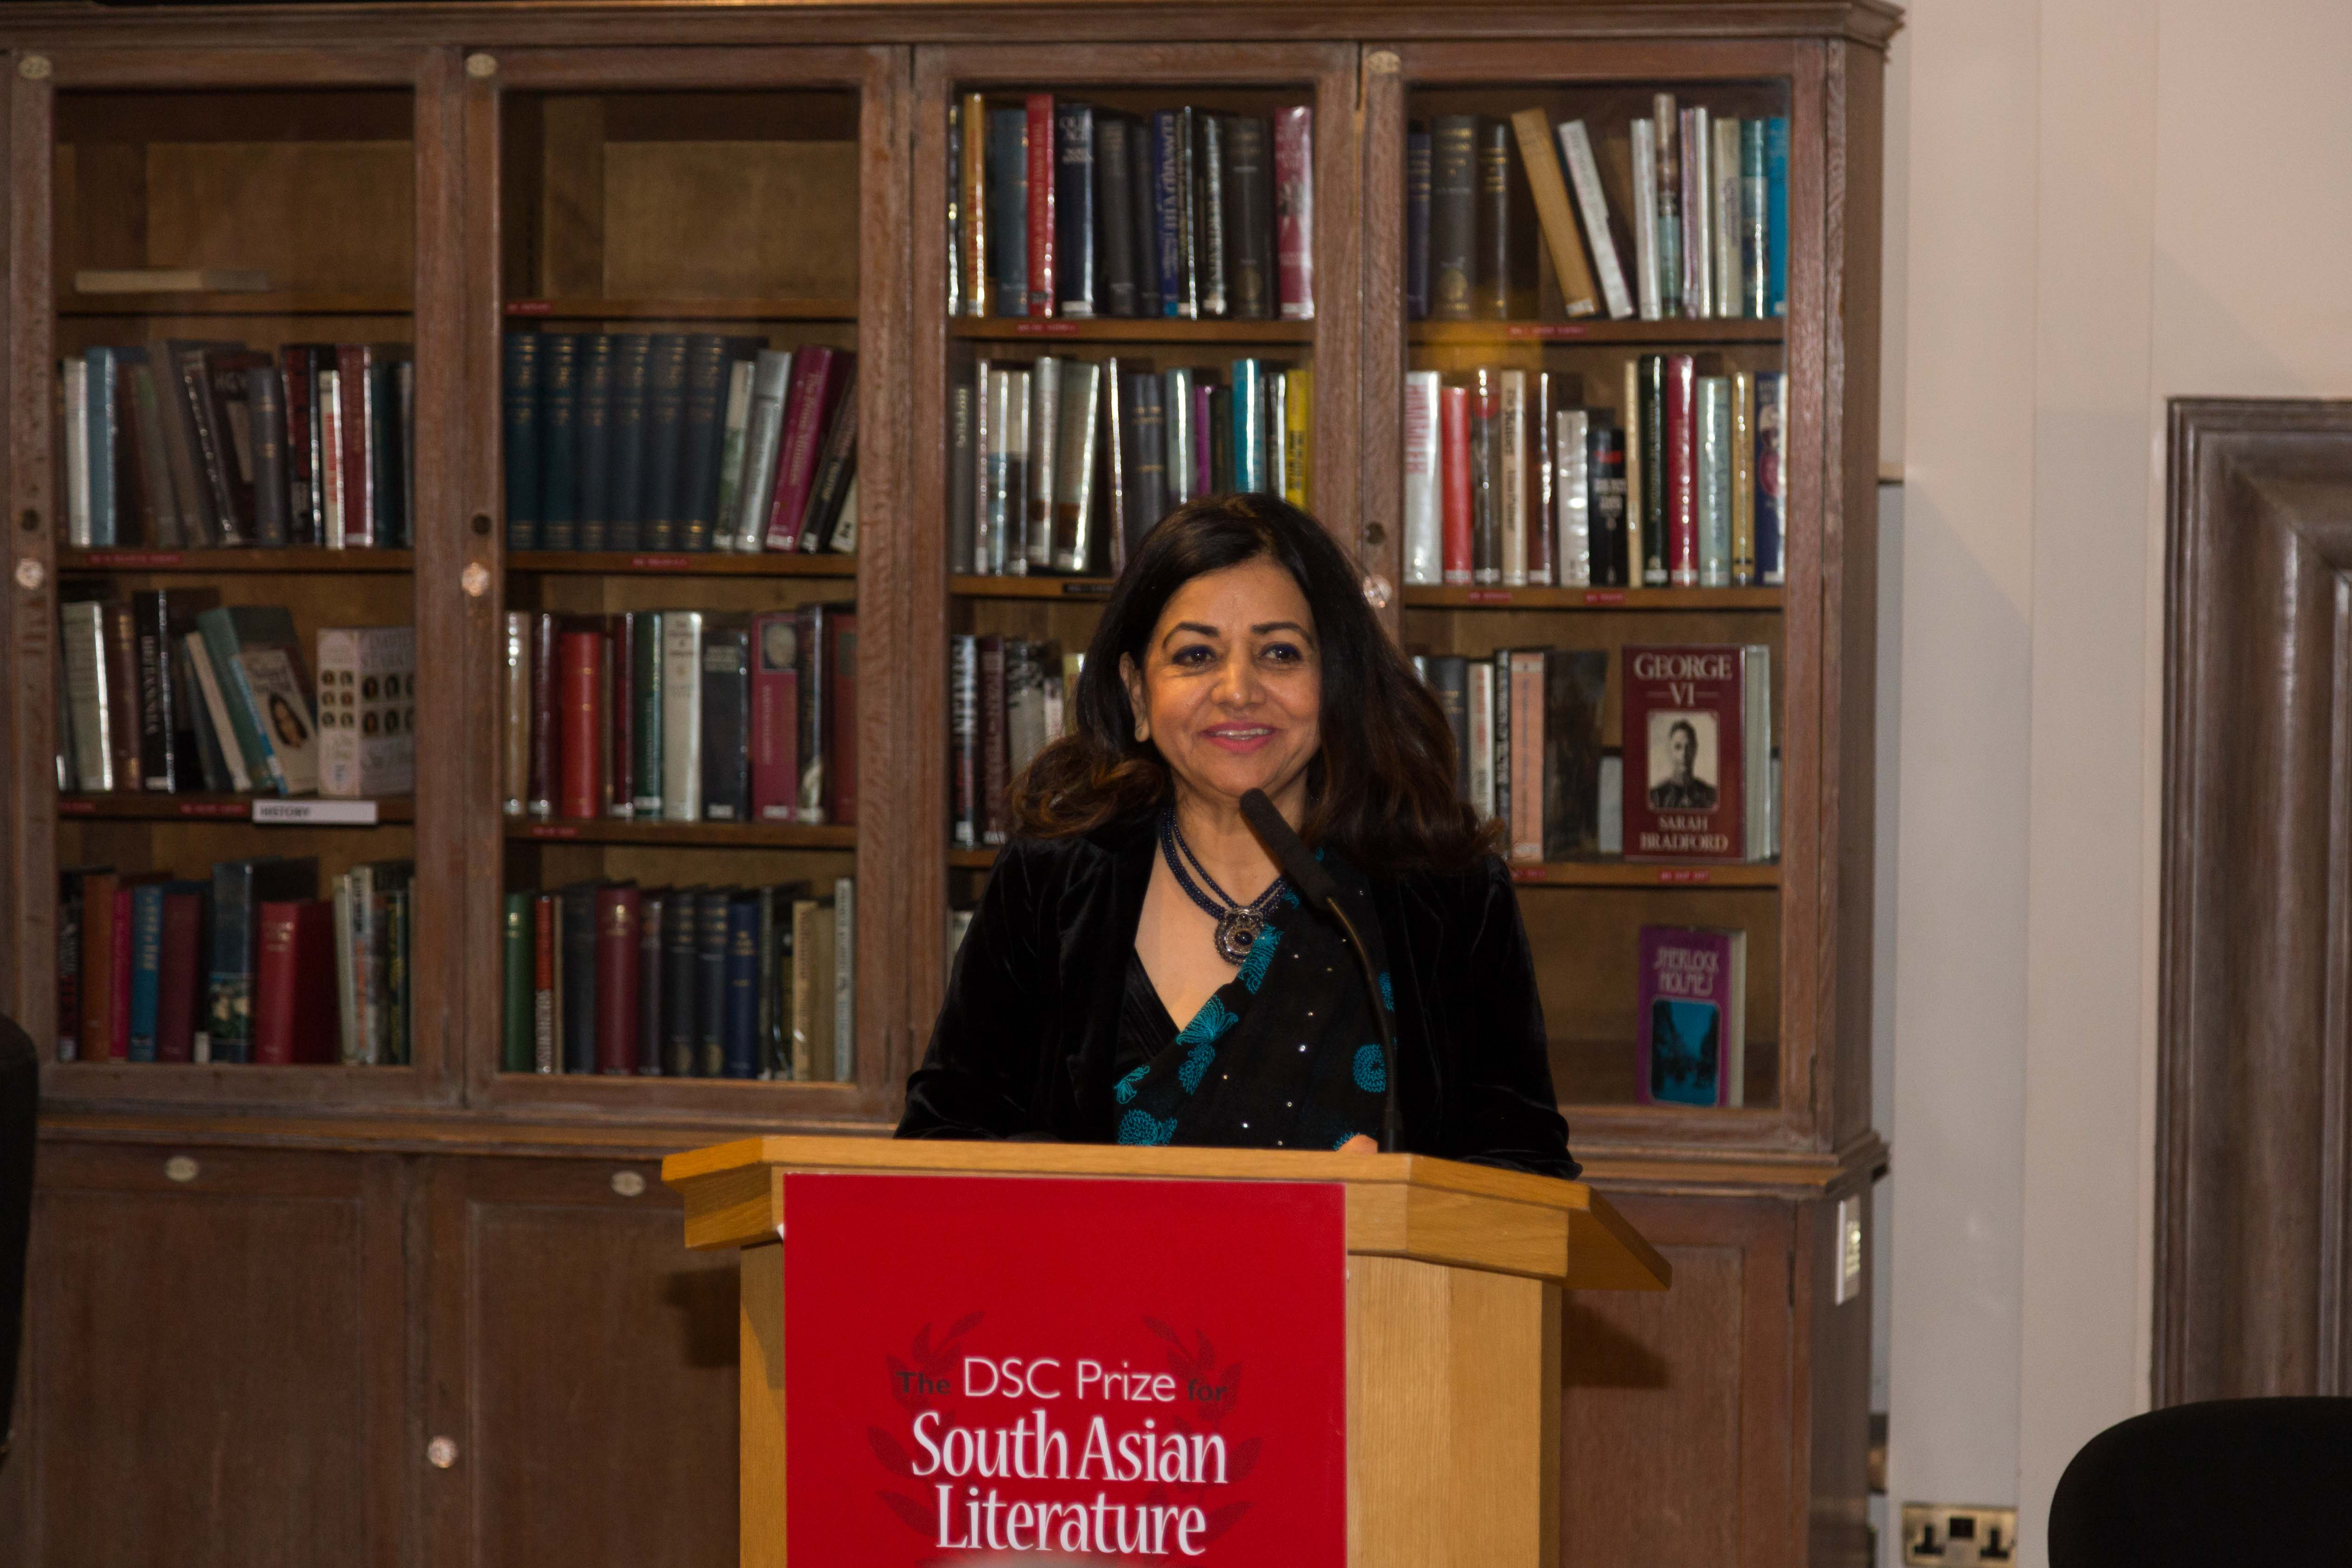 DSC Prize Shortlist For South Asian Literature 2018 Announced – Sterling Media